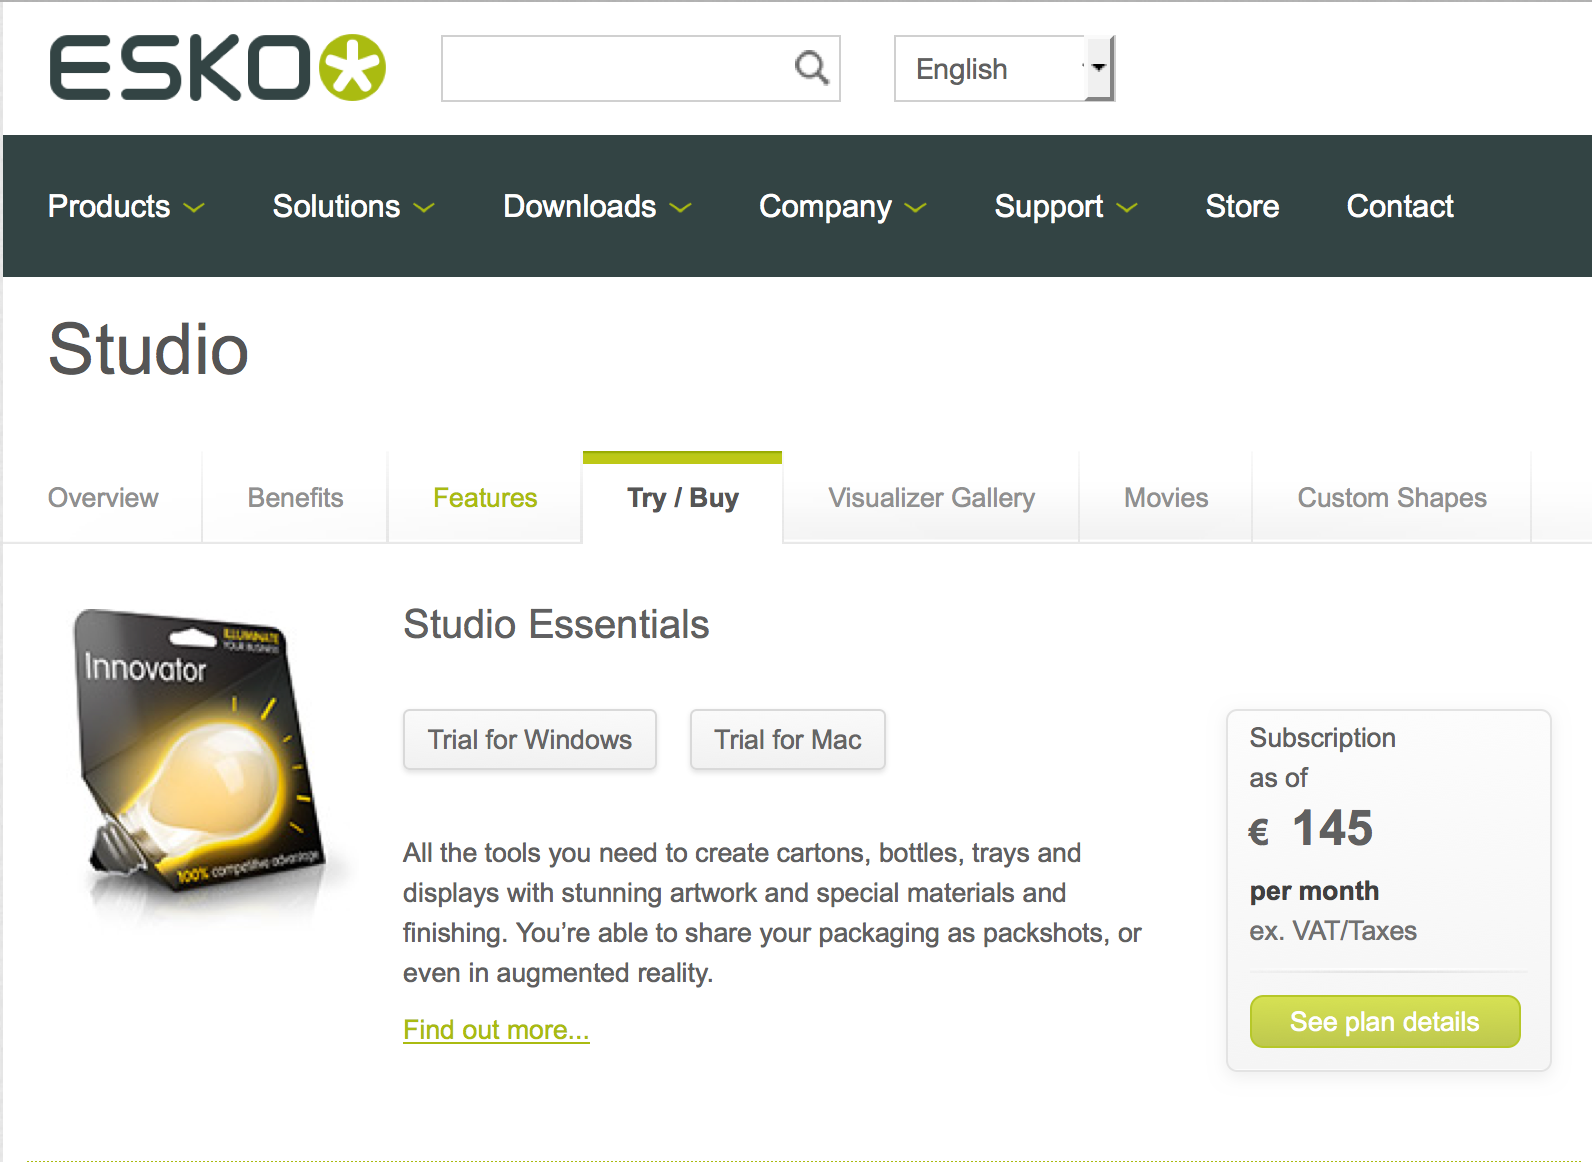 KB152240400: Studio - How to start a Studio product trial